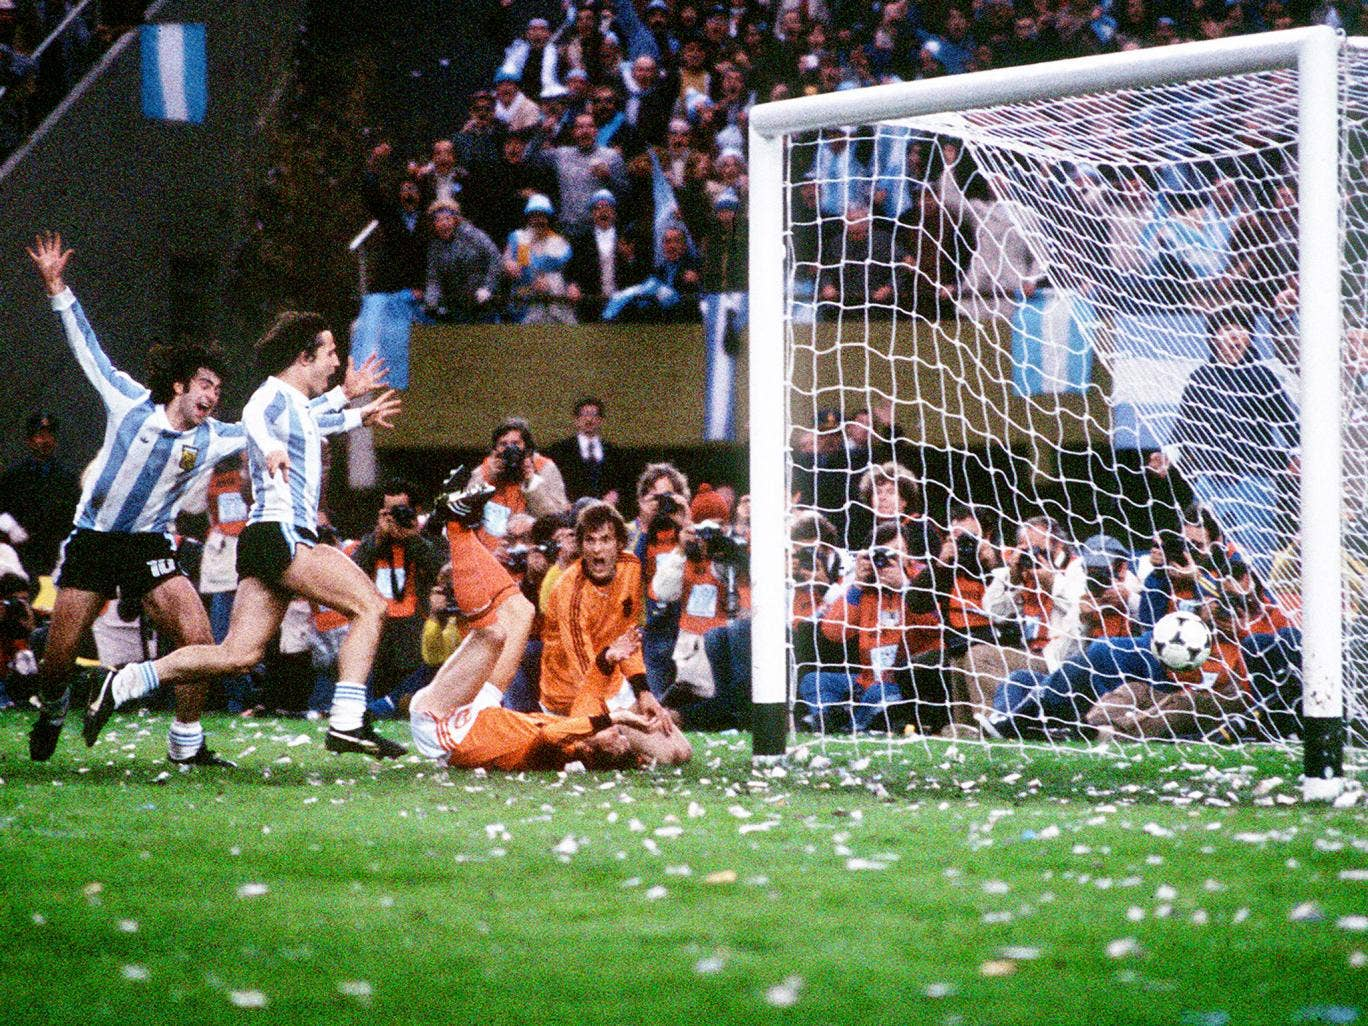 Mario Kempes scores for Argentina in the 1978 World Cup final